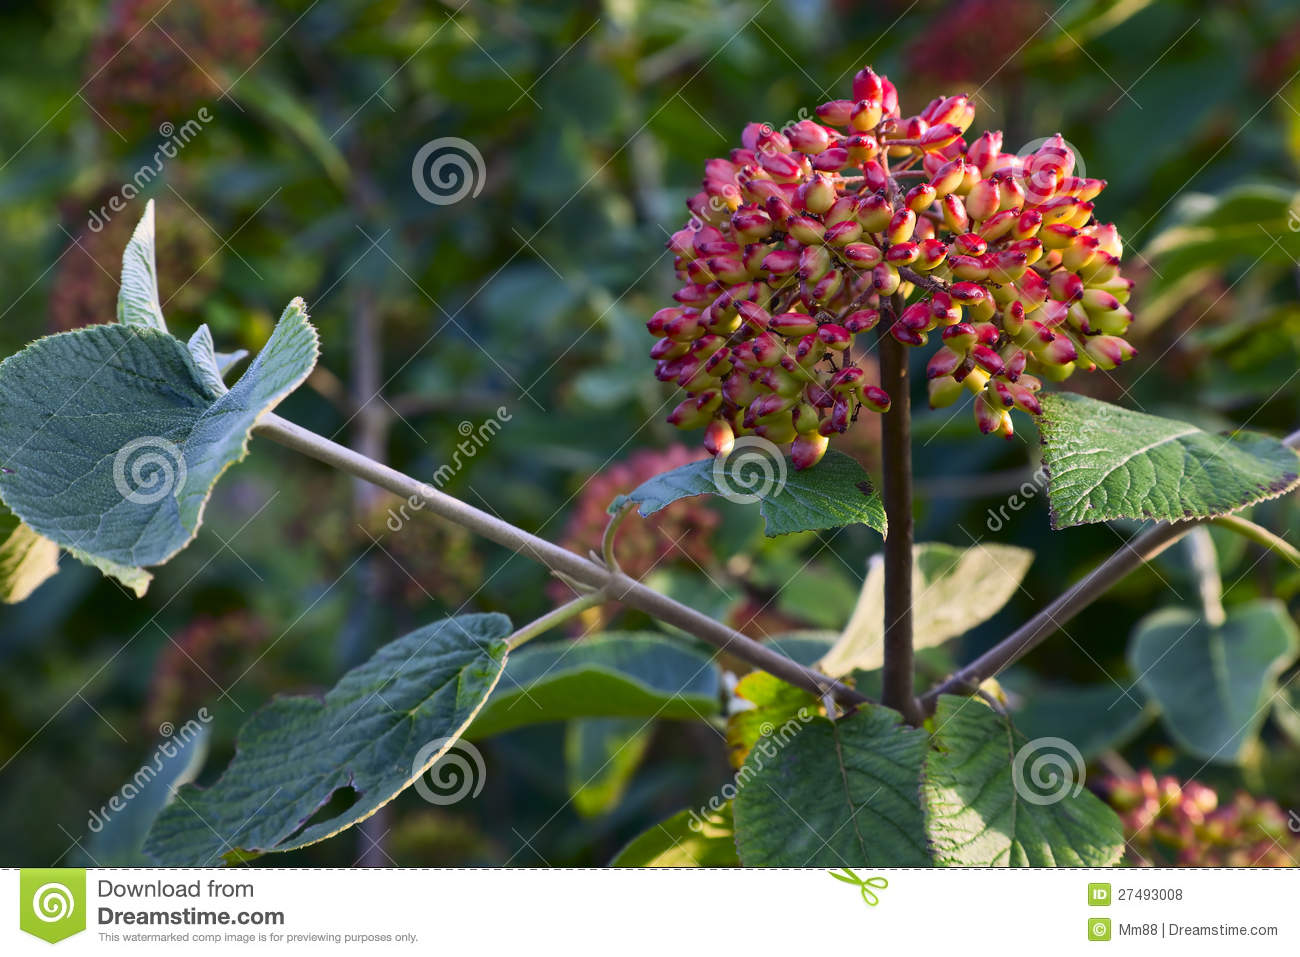 meet viburnum singles How to space viburnum hedges a measuring tape will help you space your viburnum properly related articles single-row hedge 1 read your viburnum's plant tag.